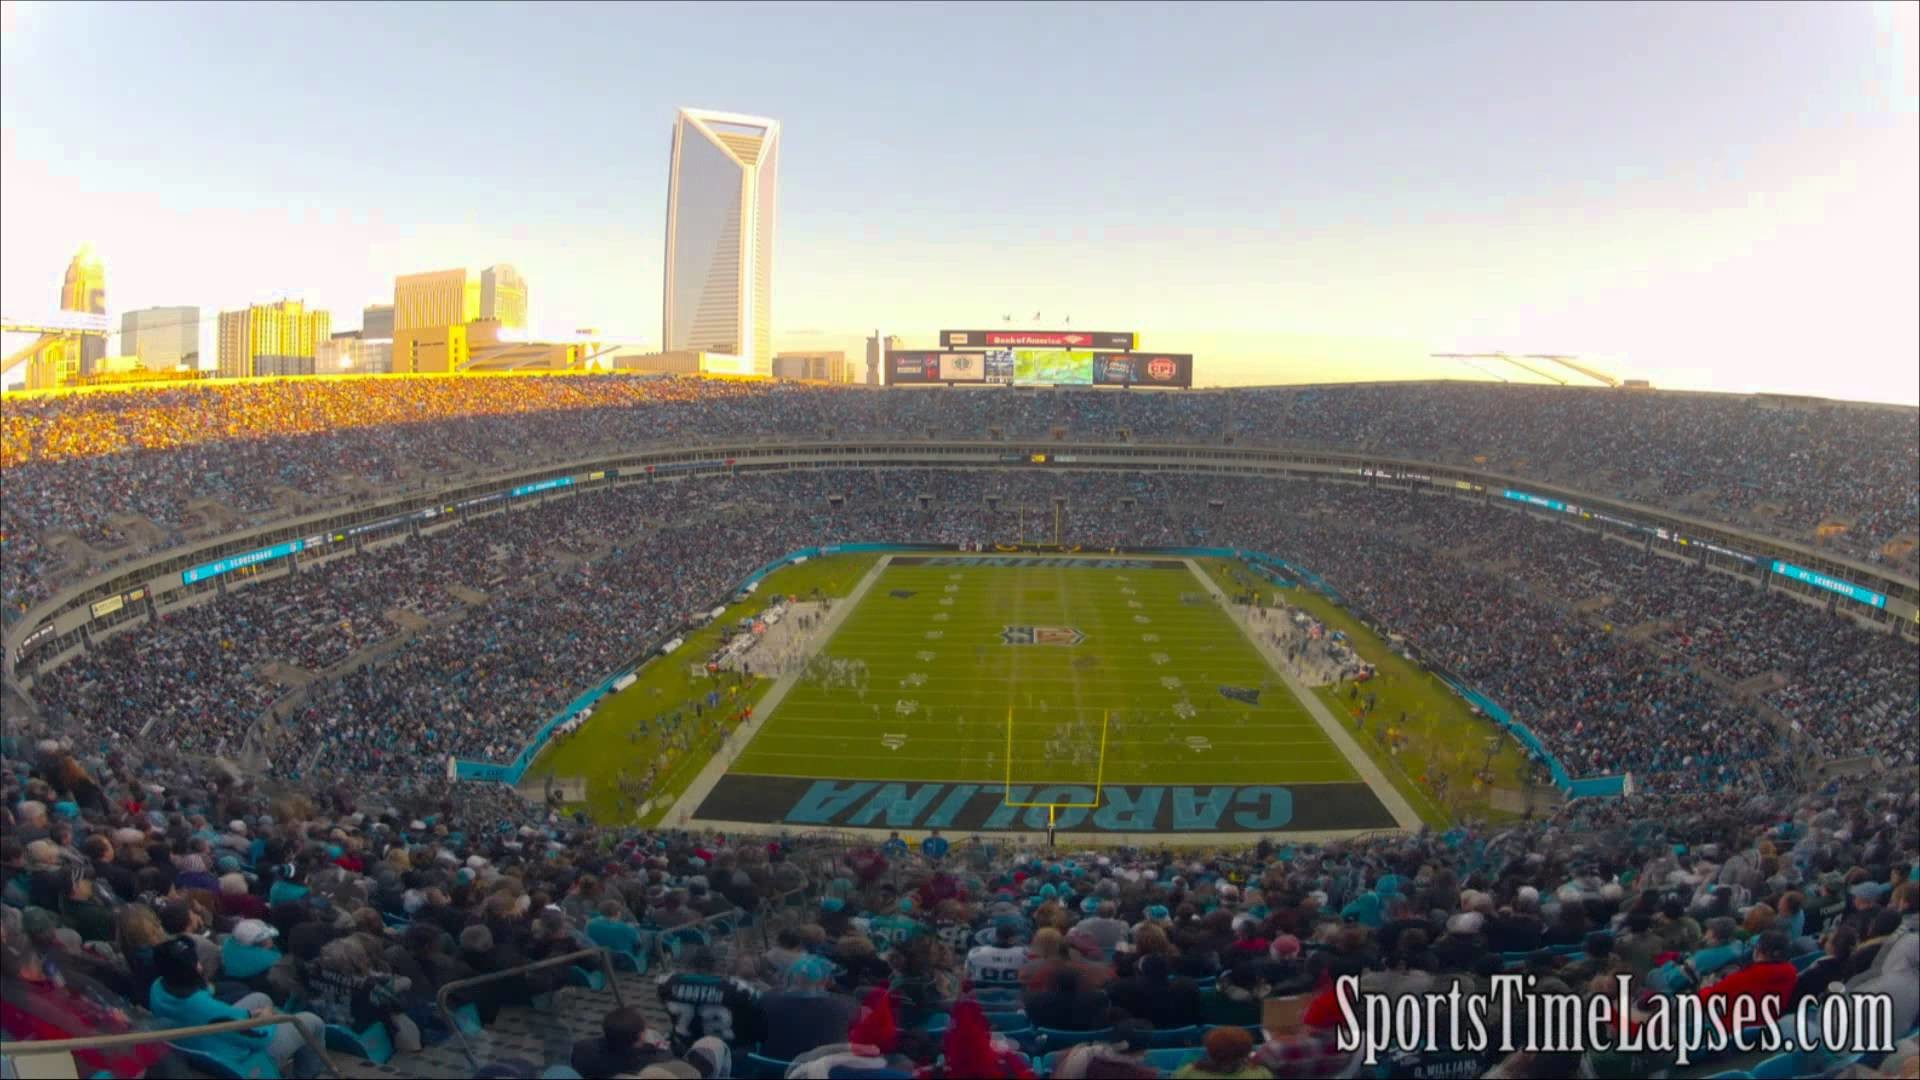 1920x1080 NFL Time Lapse: Bank of America Stadium (Carolina Panthers - End Zone) -  YouTube